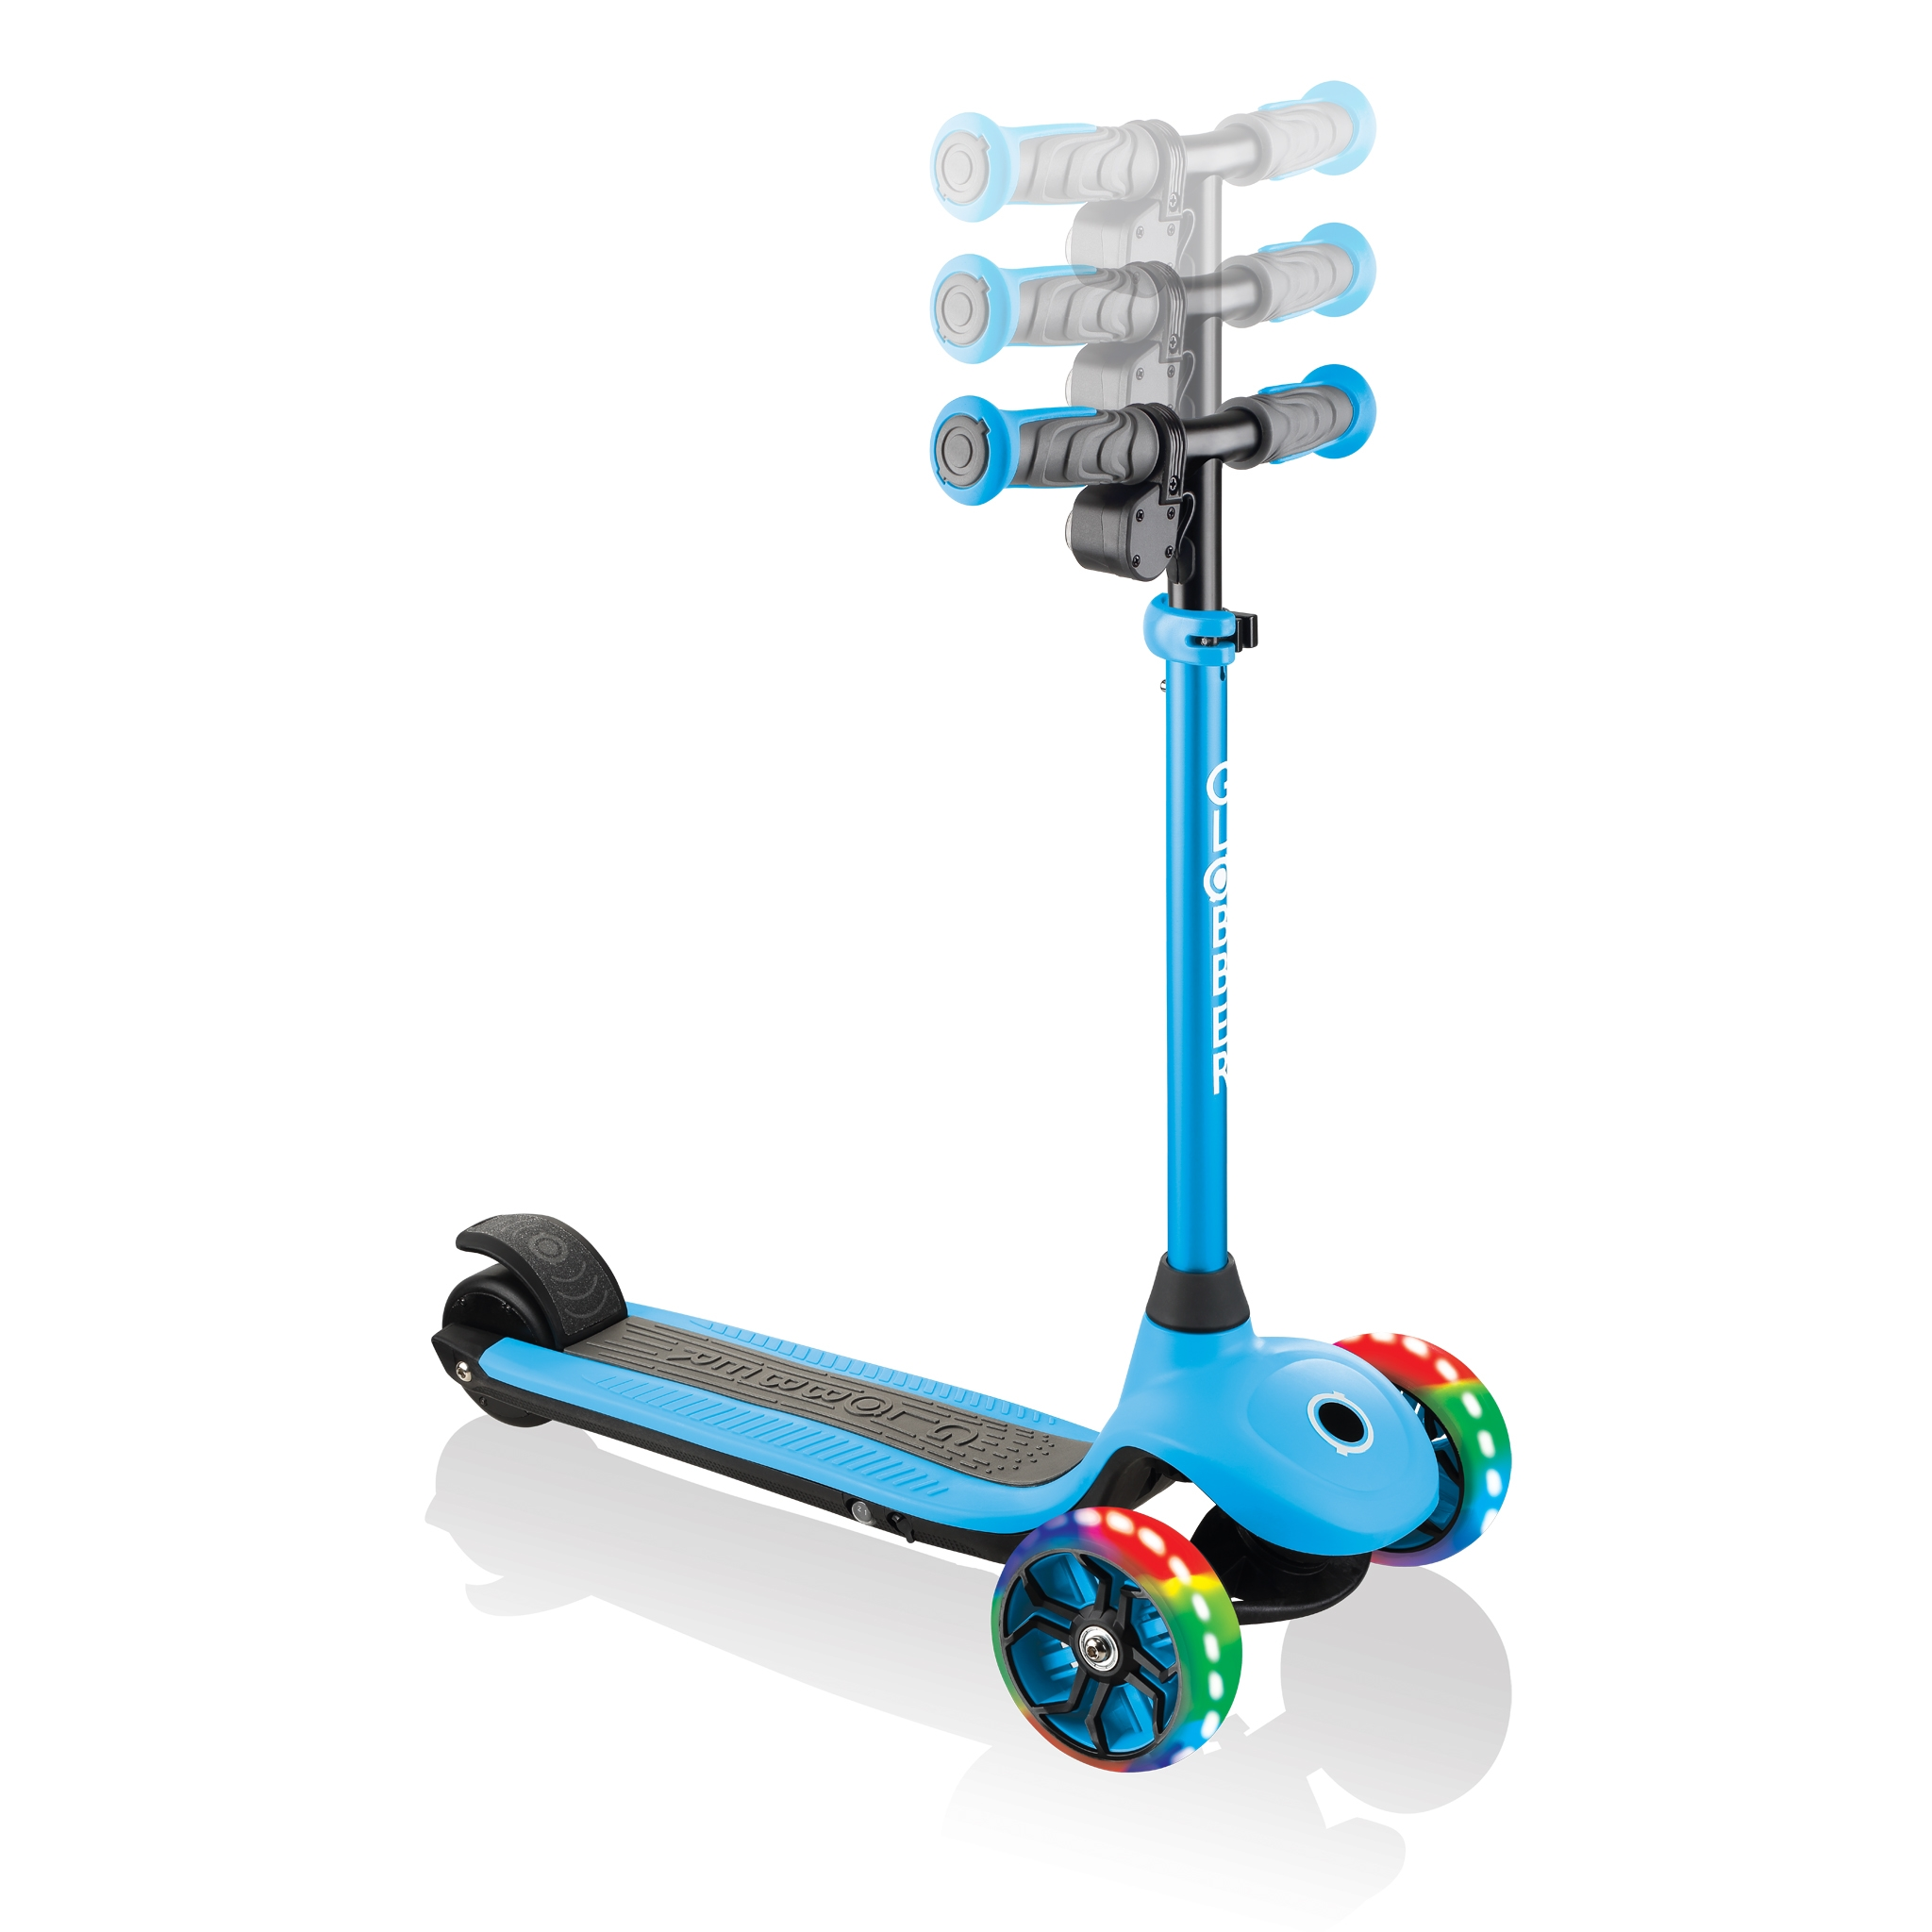 Globber-ONE-K-E-MOTION-4-award-winning-electric-scooter-for-kids-with-adjustable-T-bar-and-2-speed-modes_sky-blue